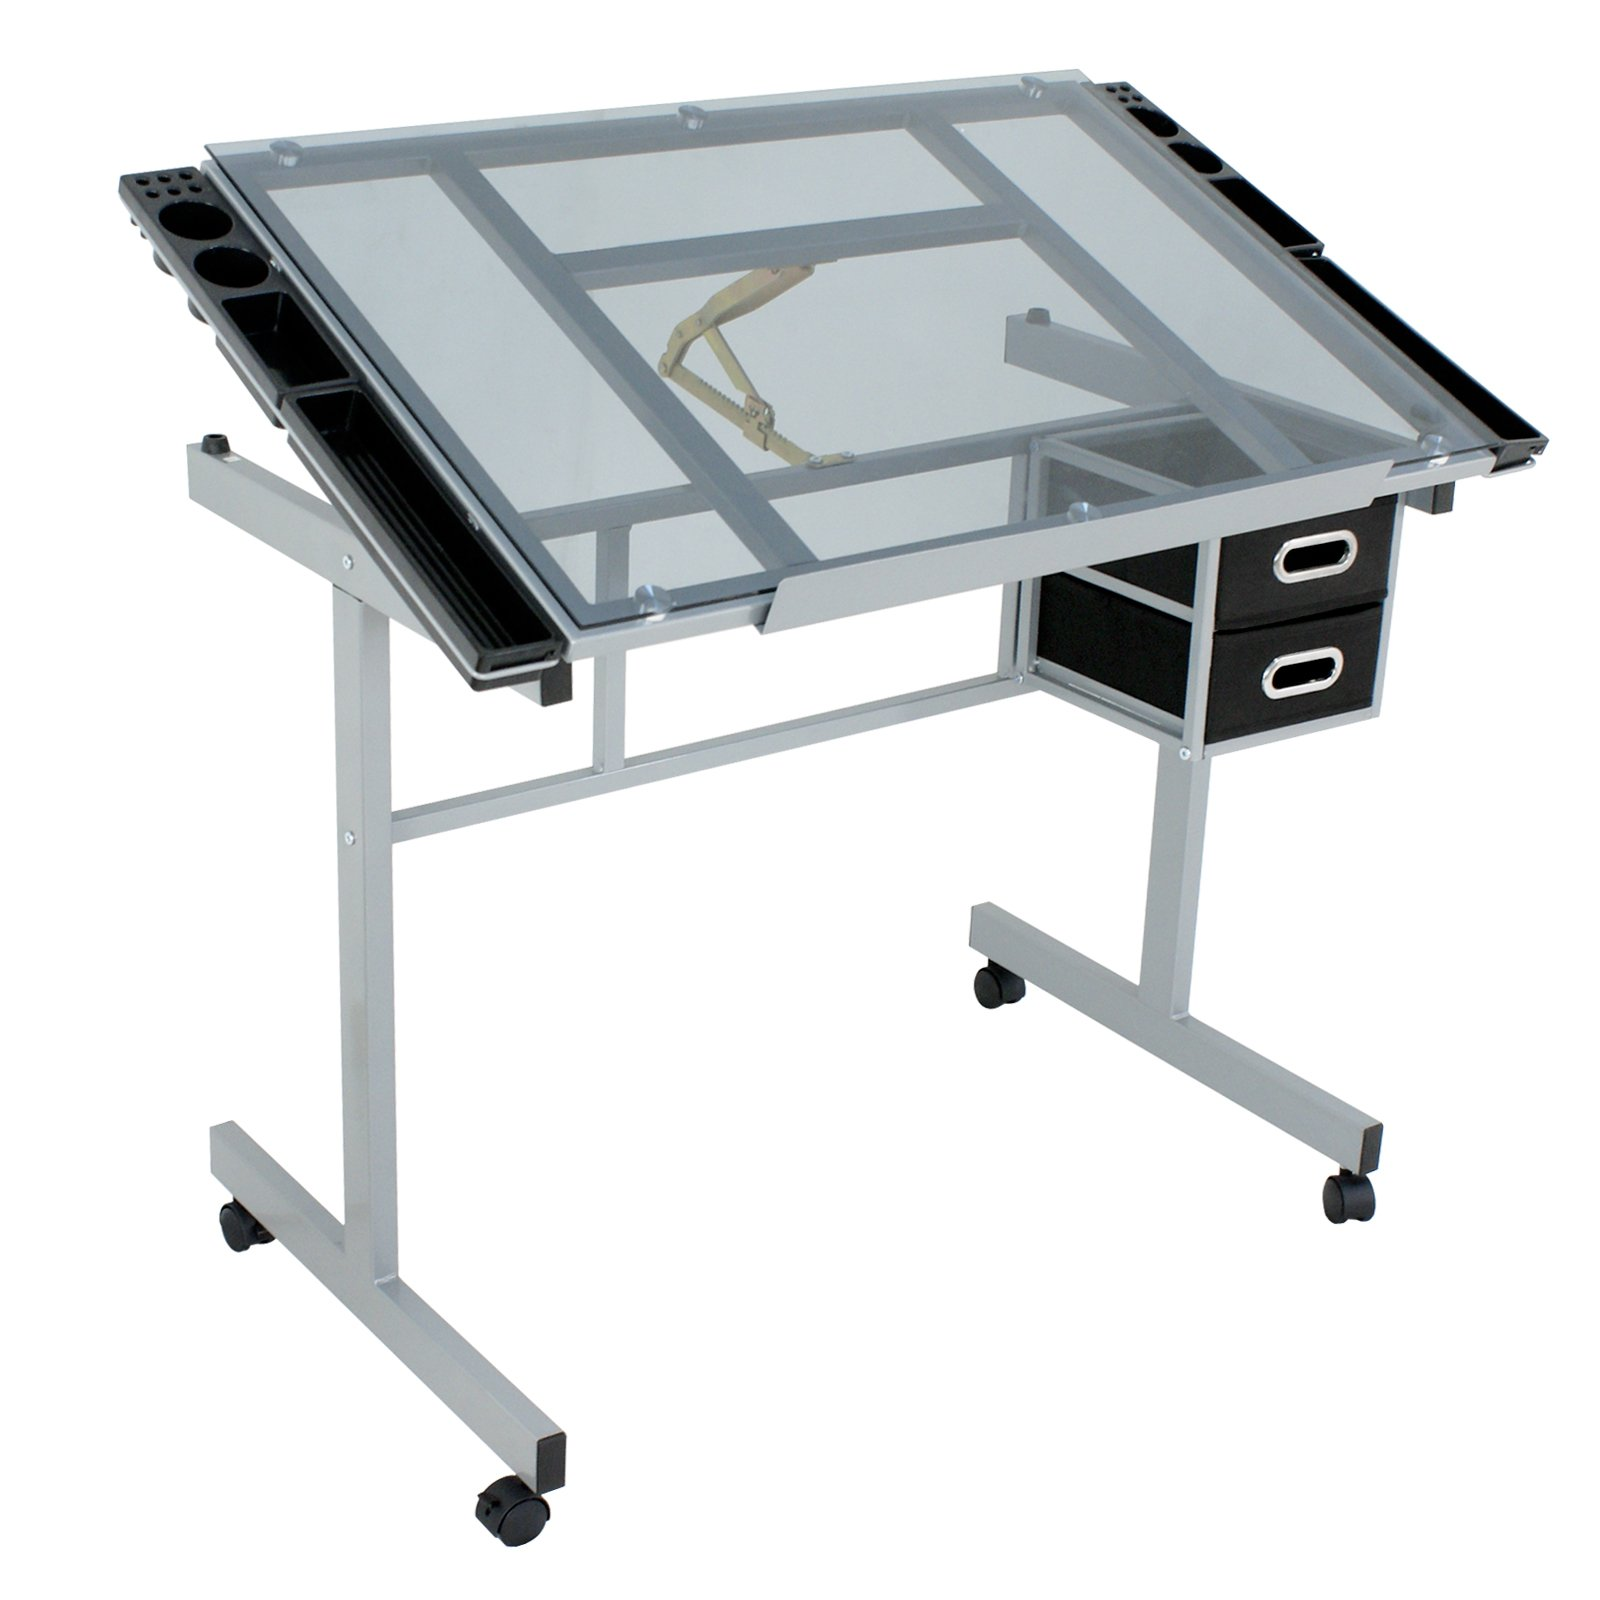 ZENY Adjustable Drawing Table Rolling Drafting Desk Tempered Glass Top W/2 Slide Drawers & Rolling Wheels